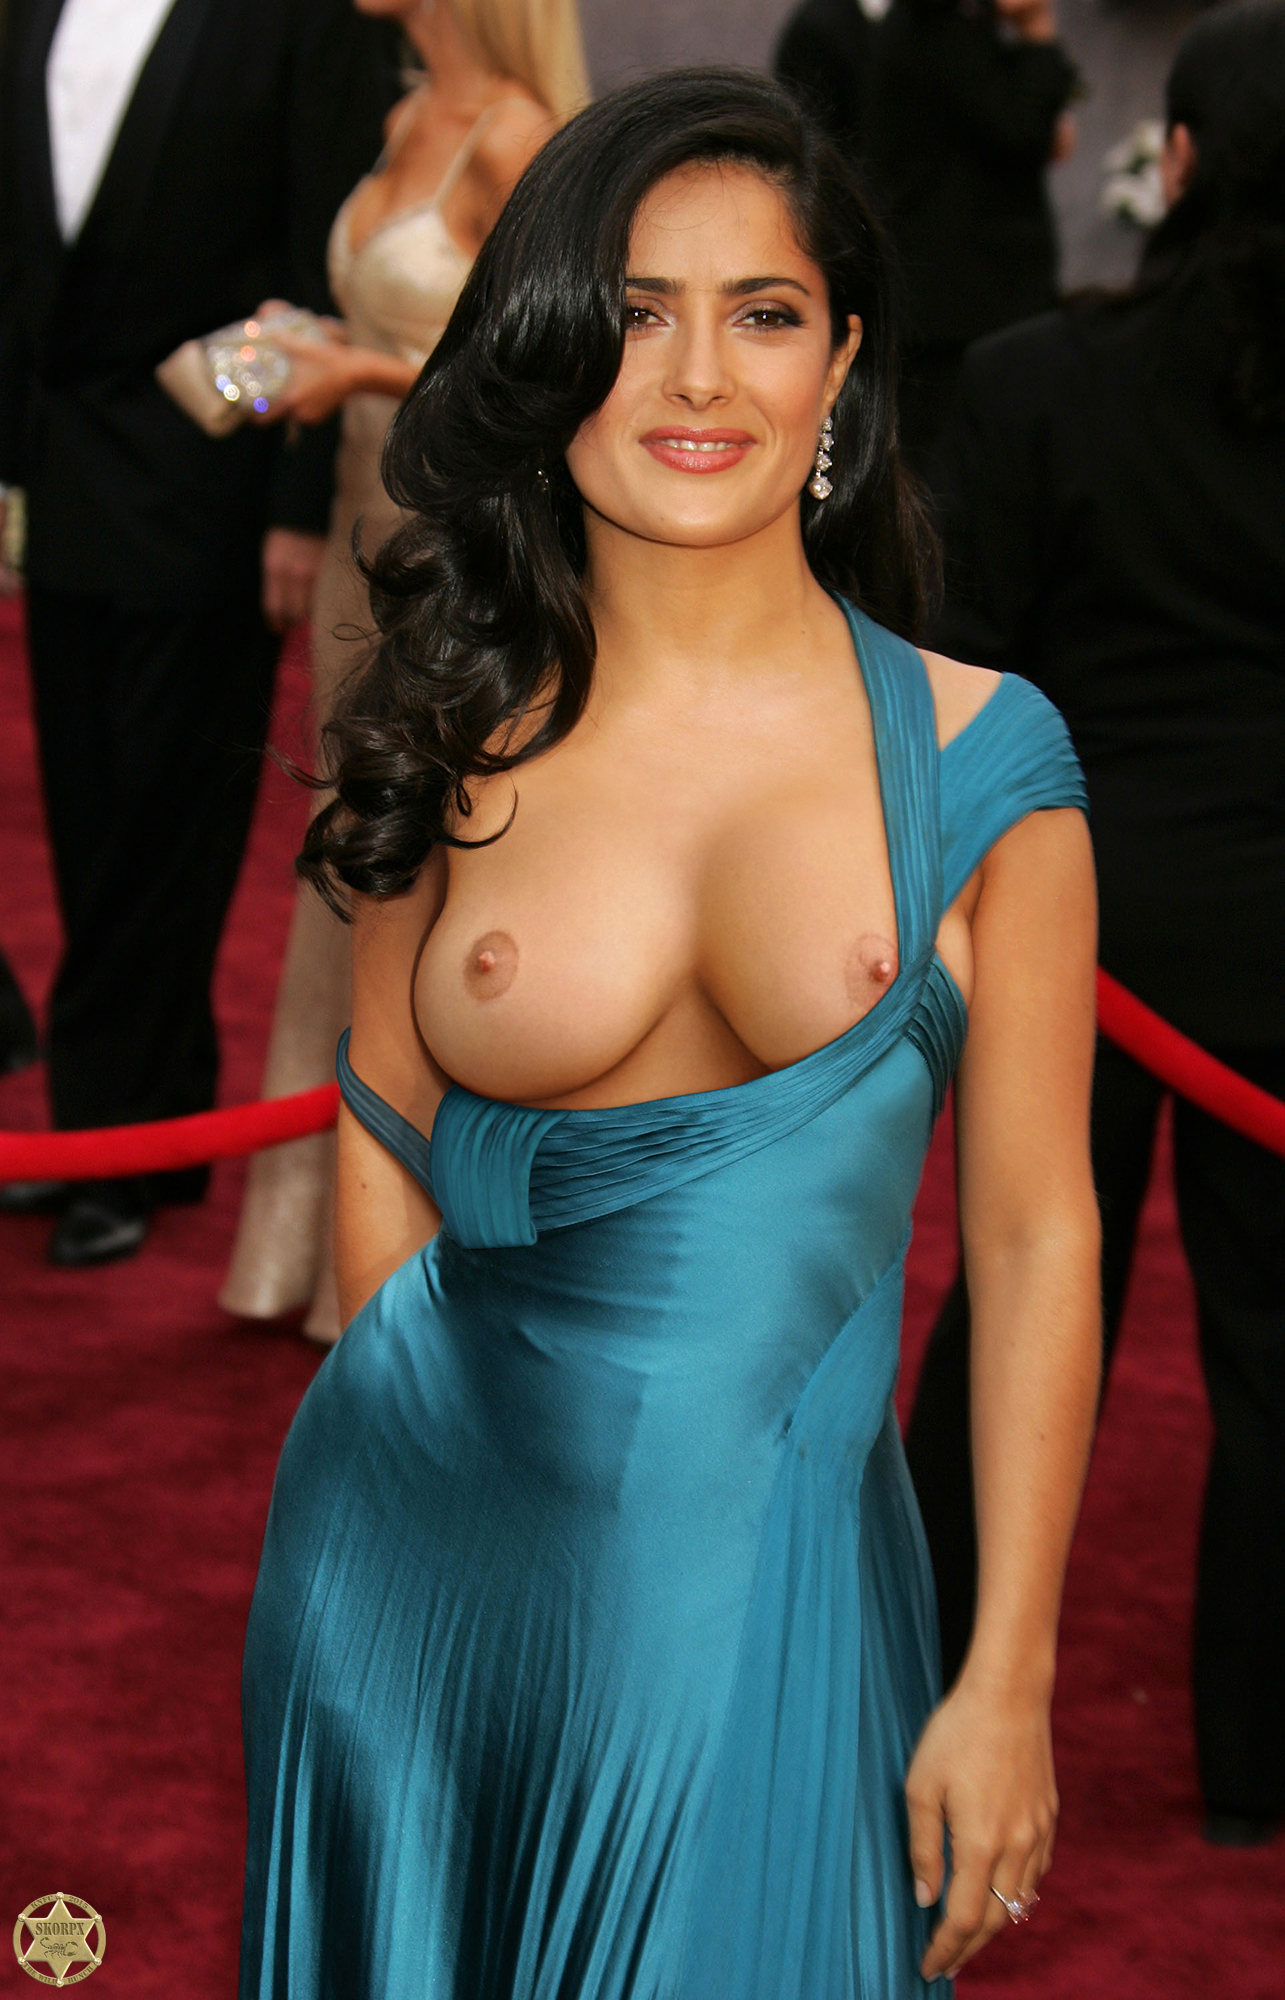 nude female pics of hollywood actresses